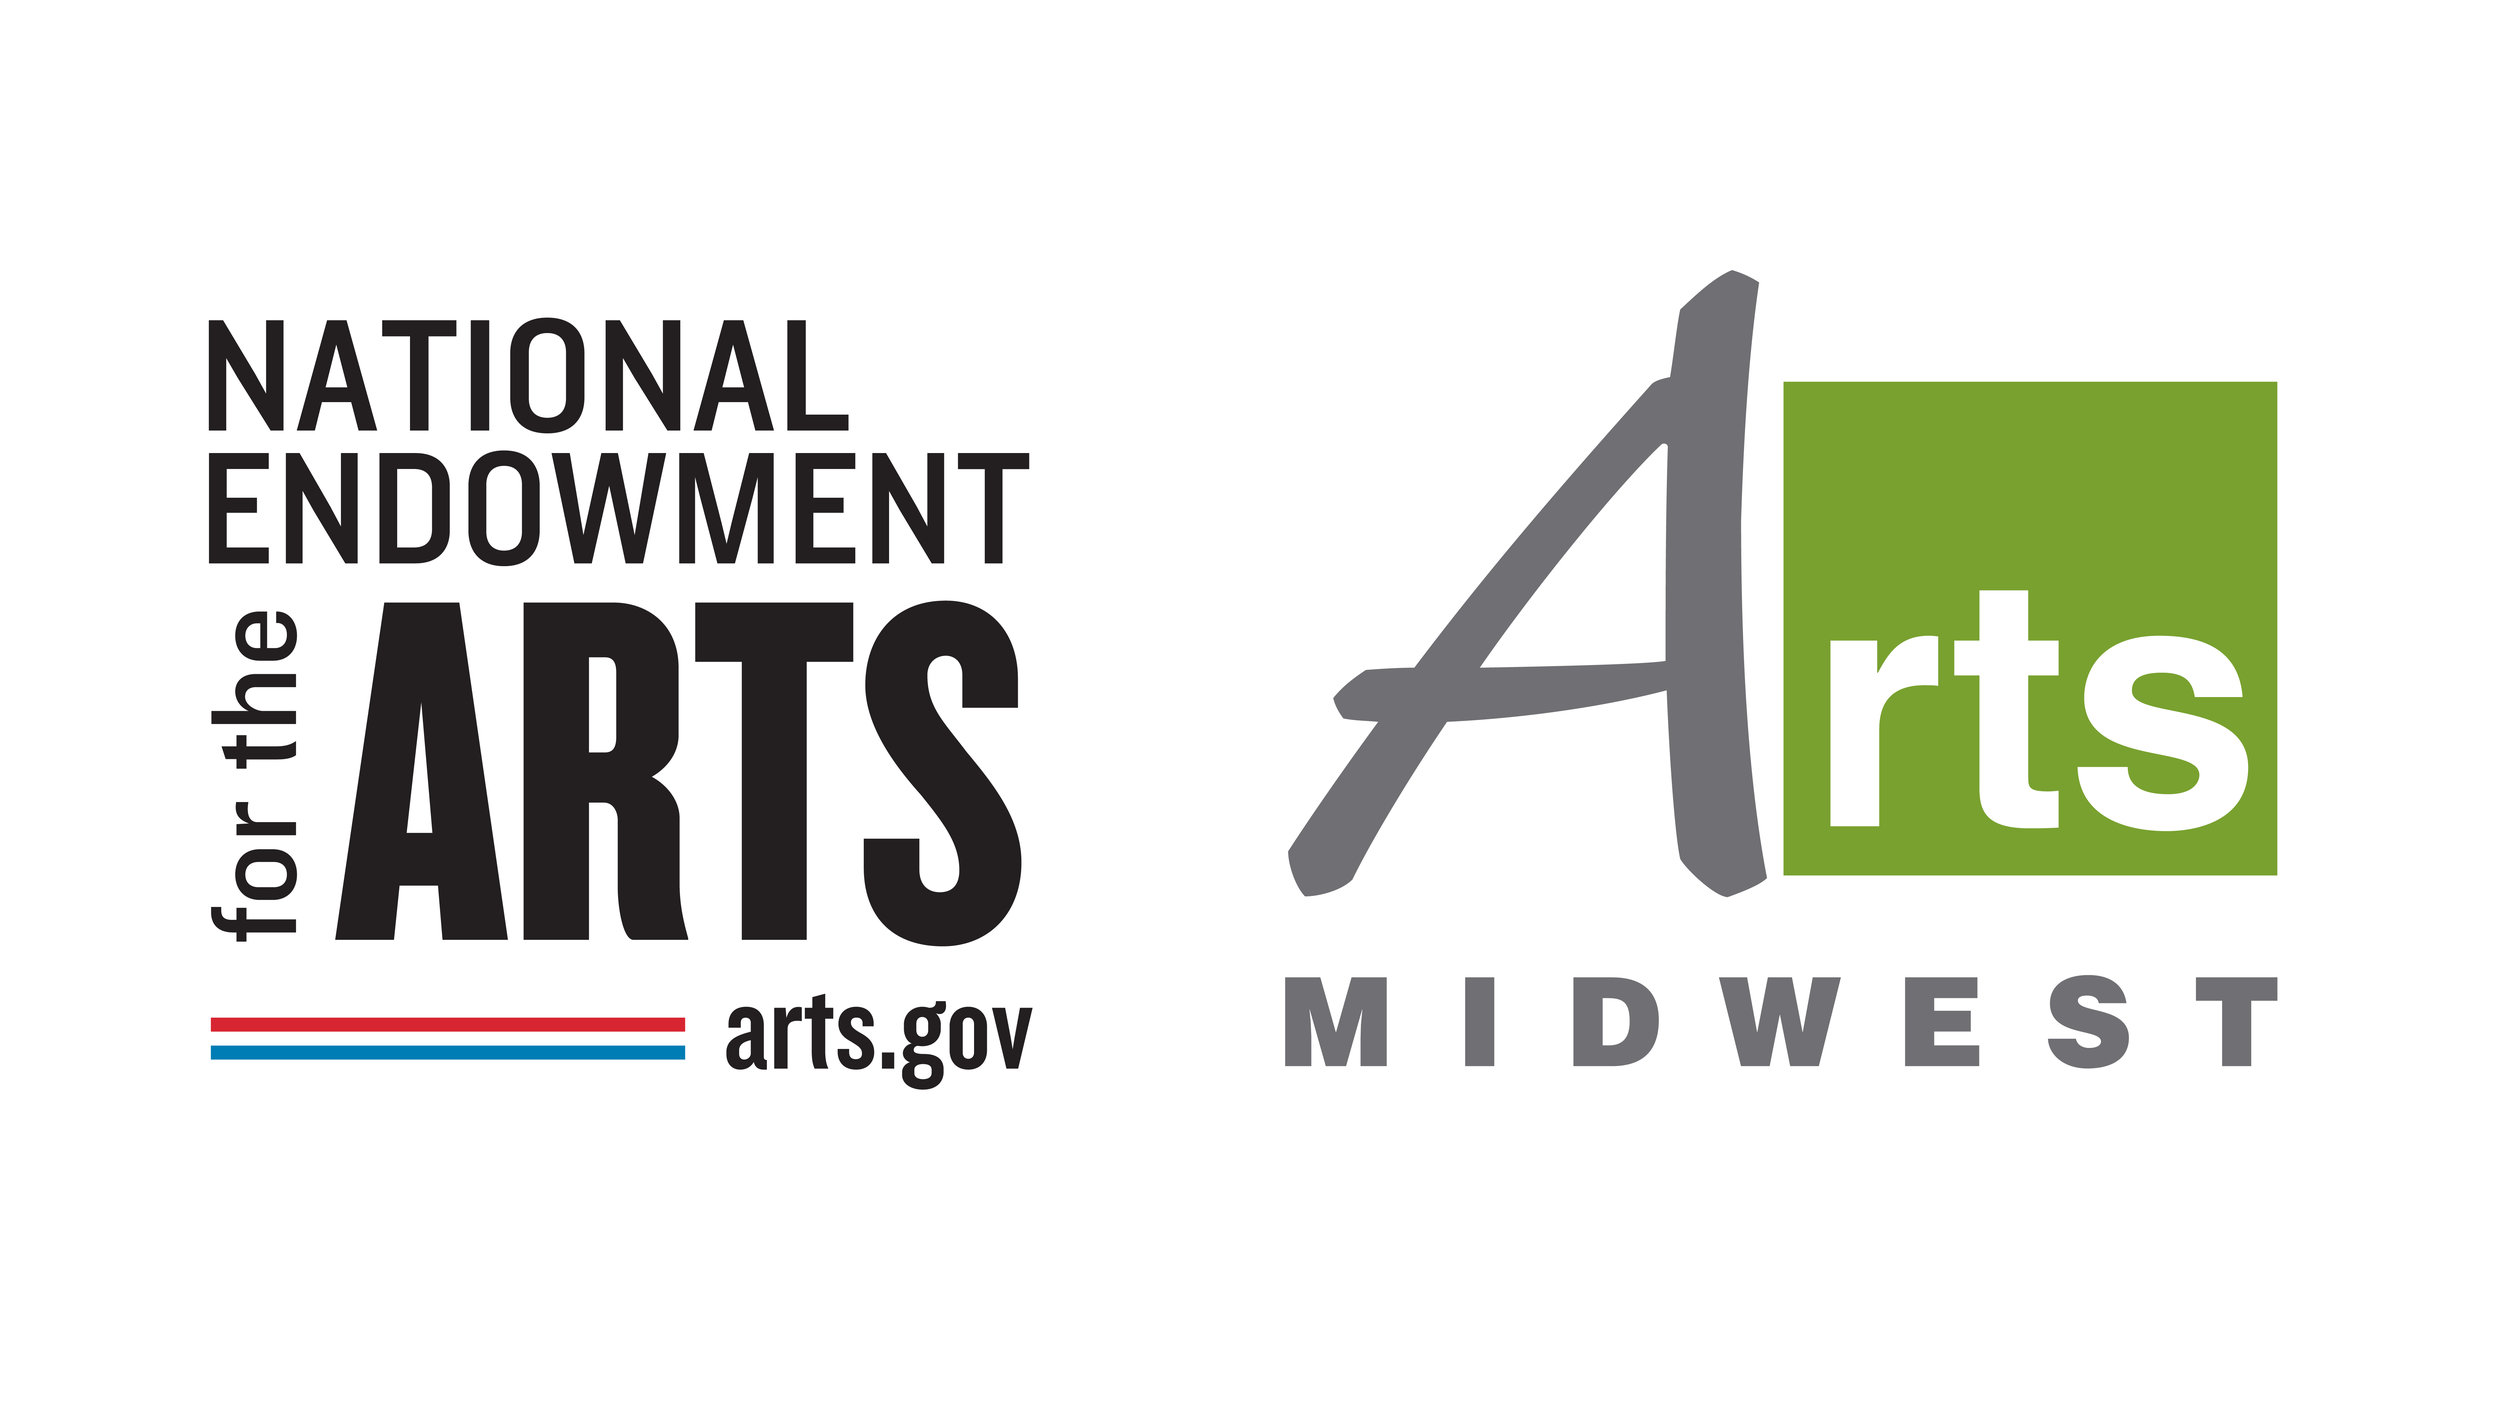 This engagement is supported by the Arts Midwest Touring Fund, a program of Arts Midwest that is funded by the National Endowment for the Arts, with additional contributions from North Dakota Council on the Arts and the Crane Group.